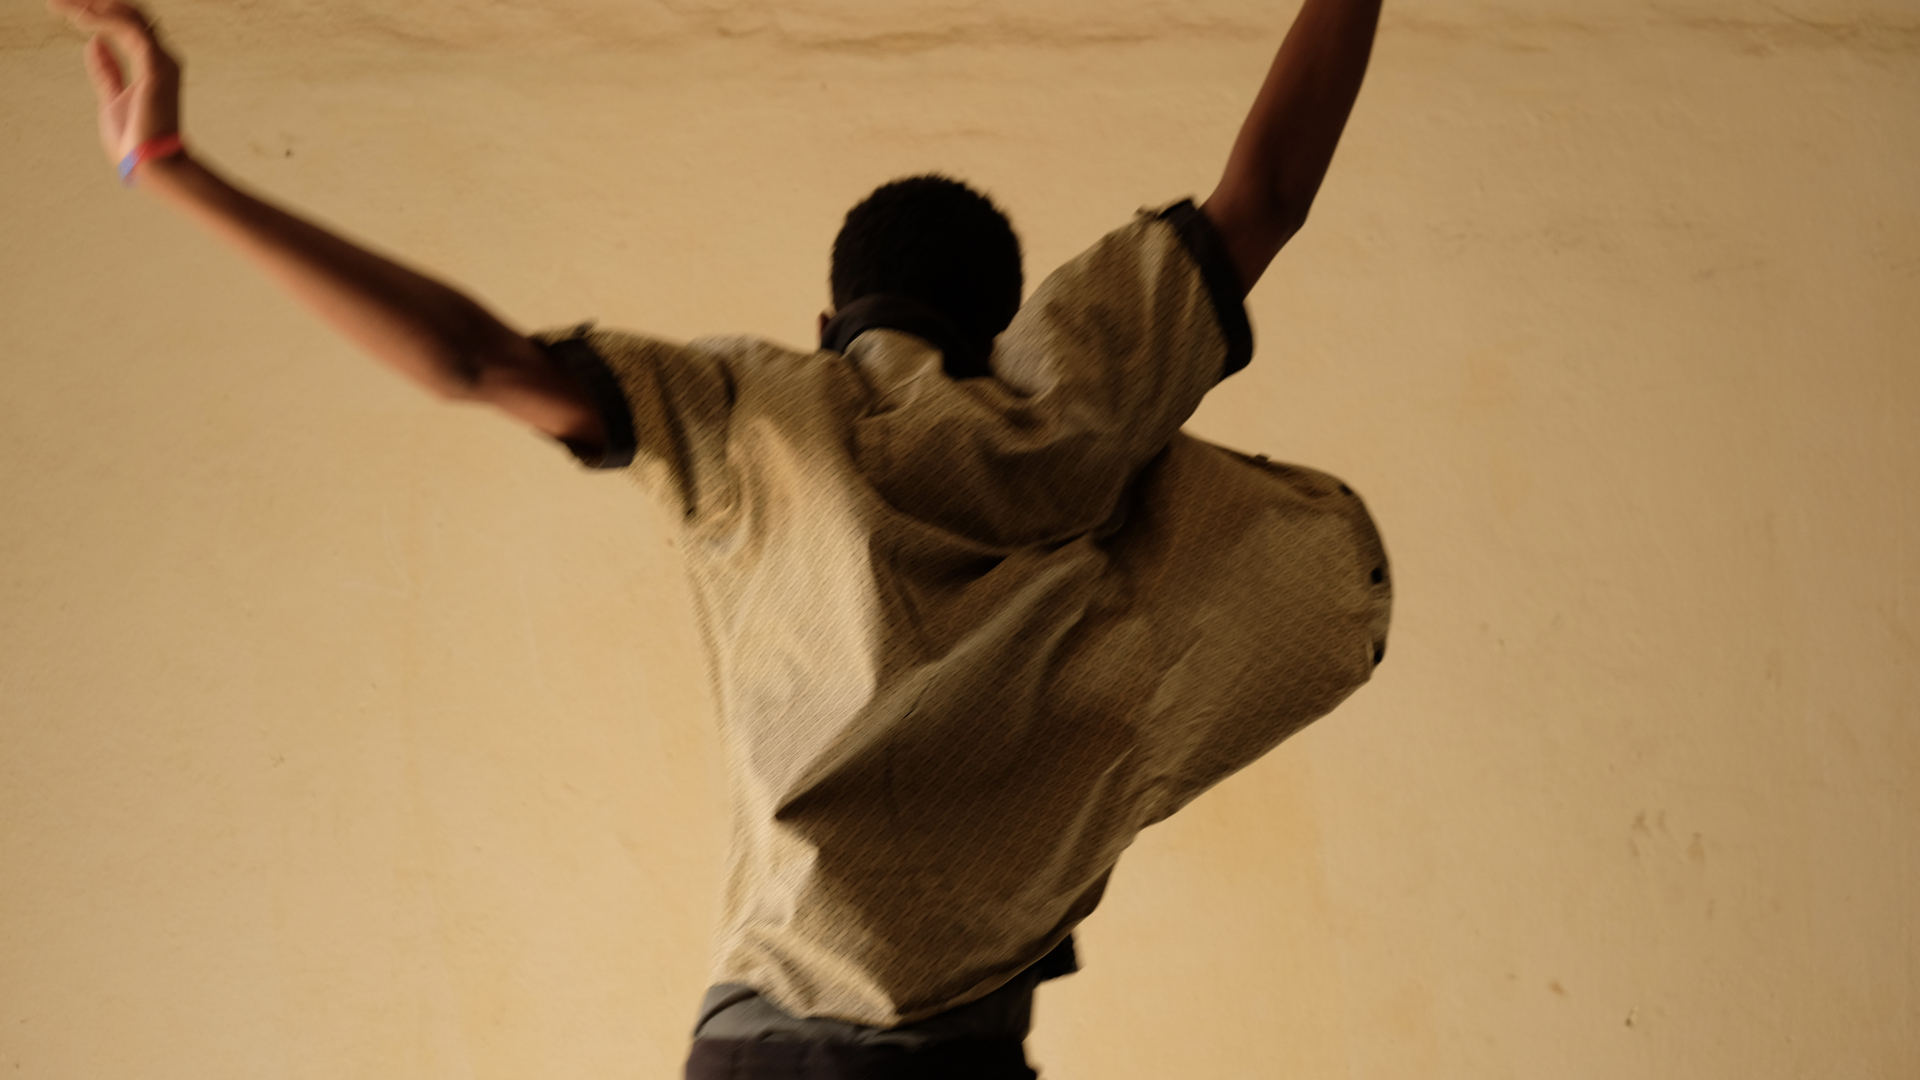 Ismael, age 16, takes flight at a center for children who have been released from the military detention center in Gao. The boys are often arrested with adults and held in the same cell. UNICEF continues to advocate for the immediate release of any children in custody. At centers like this, they are given counselling and support to get back home and rebuild their lives. Boys like Ismael are able to get small grants to help them get started in their new life.